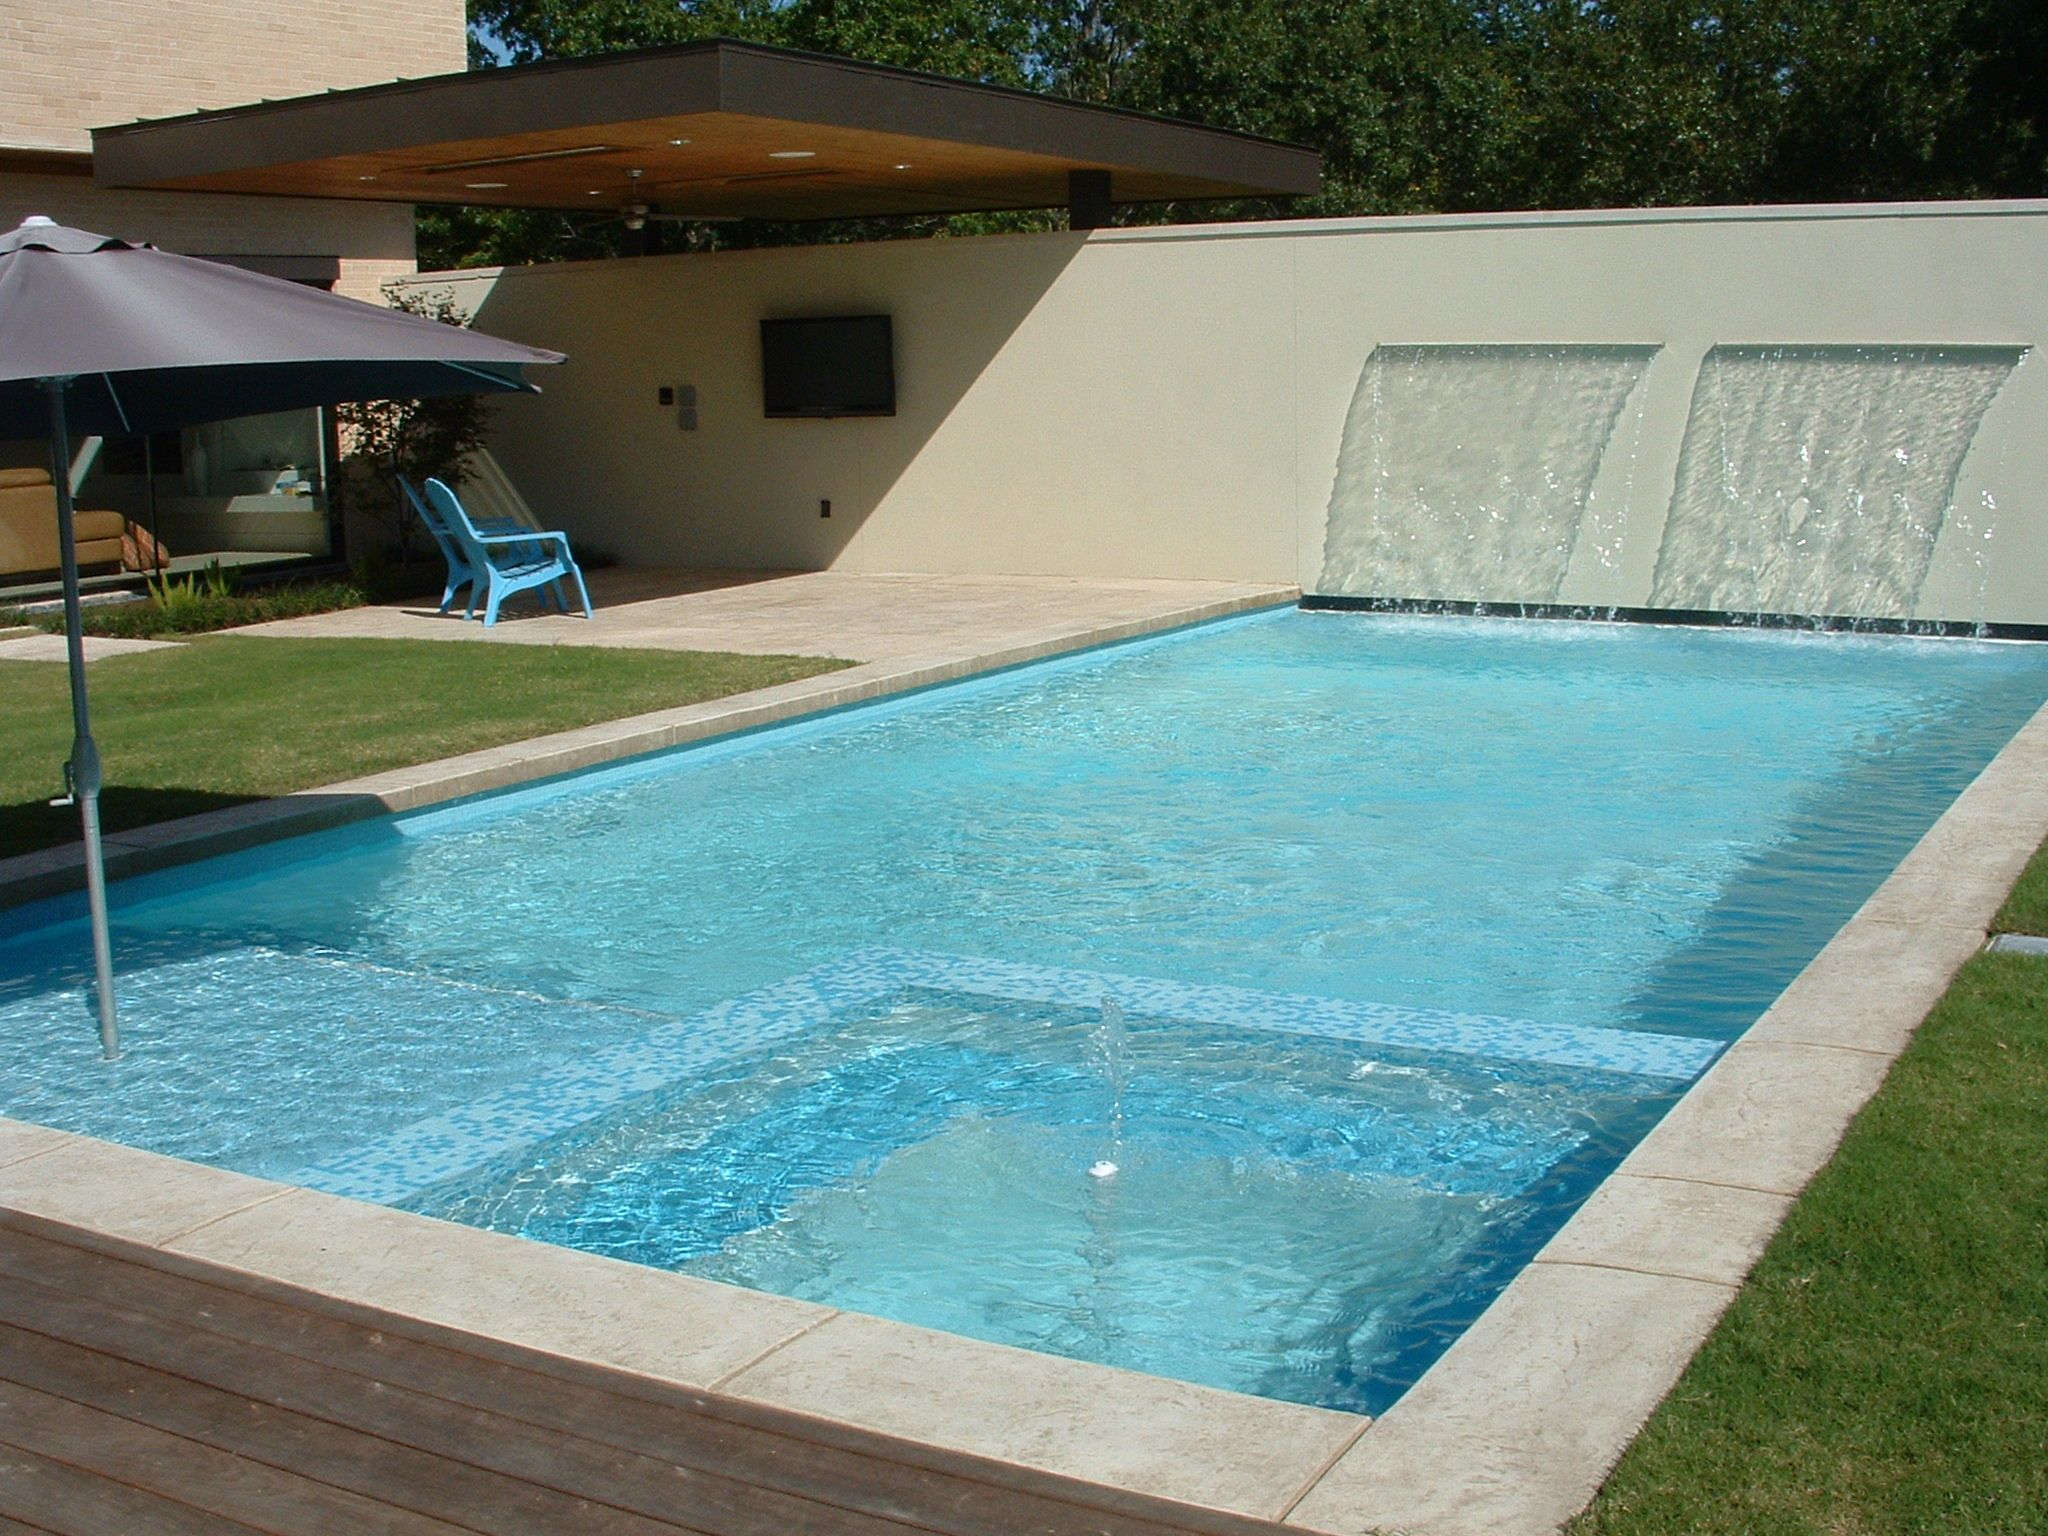 10 best images about swimming pools on pinterest | pool waterfall